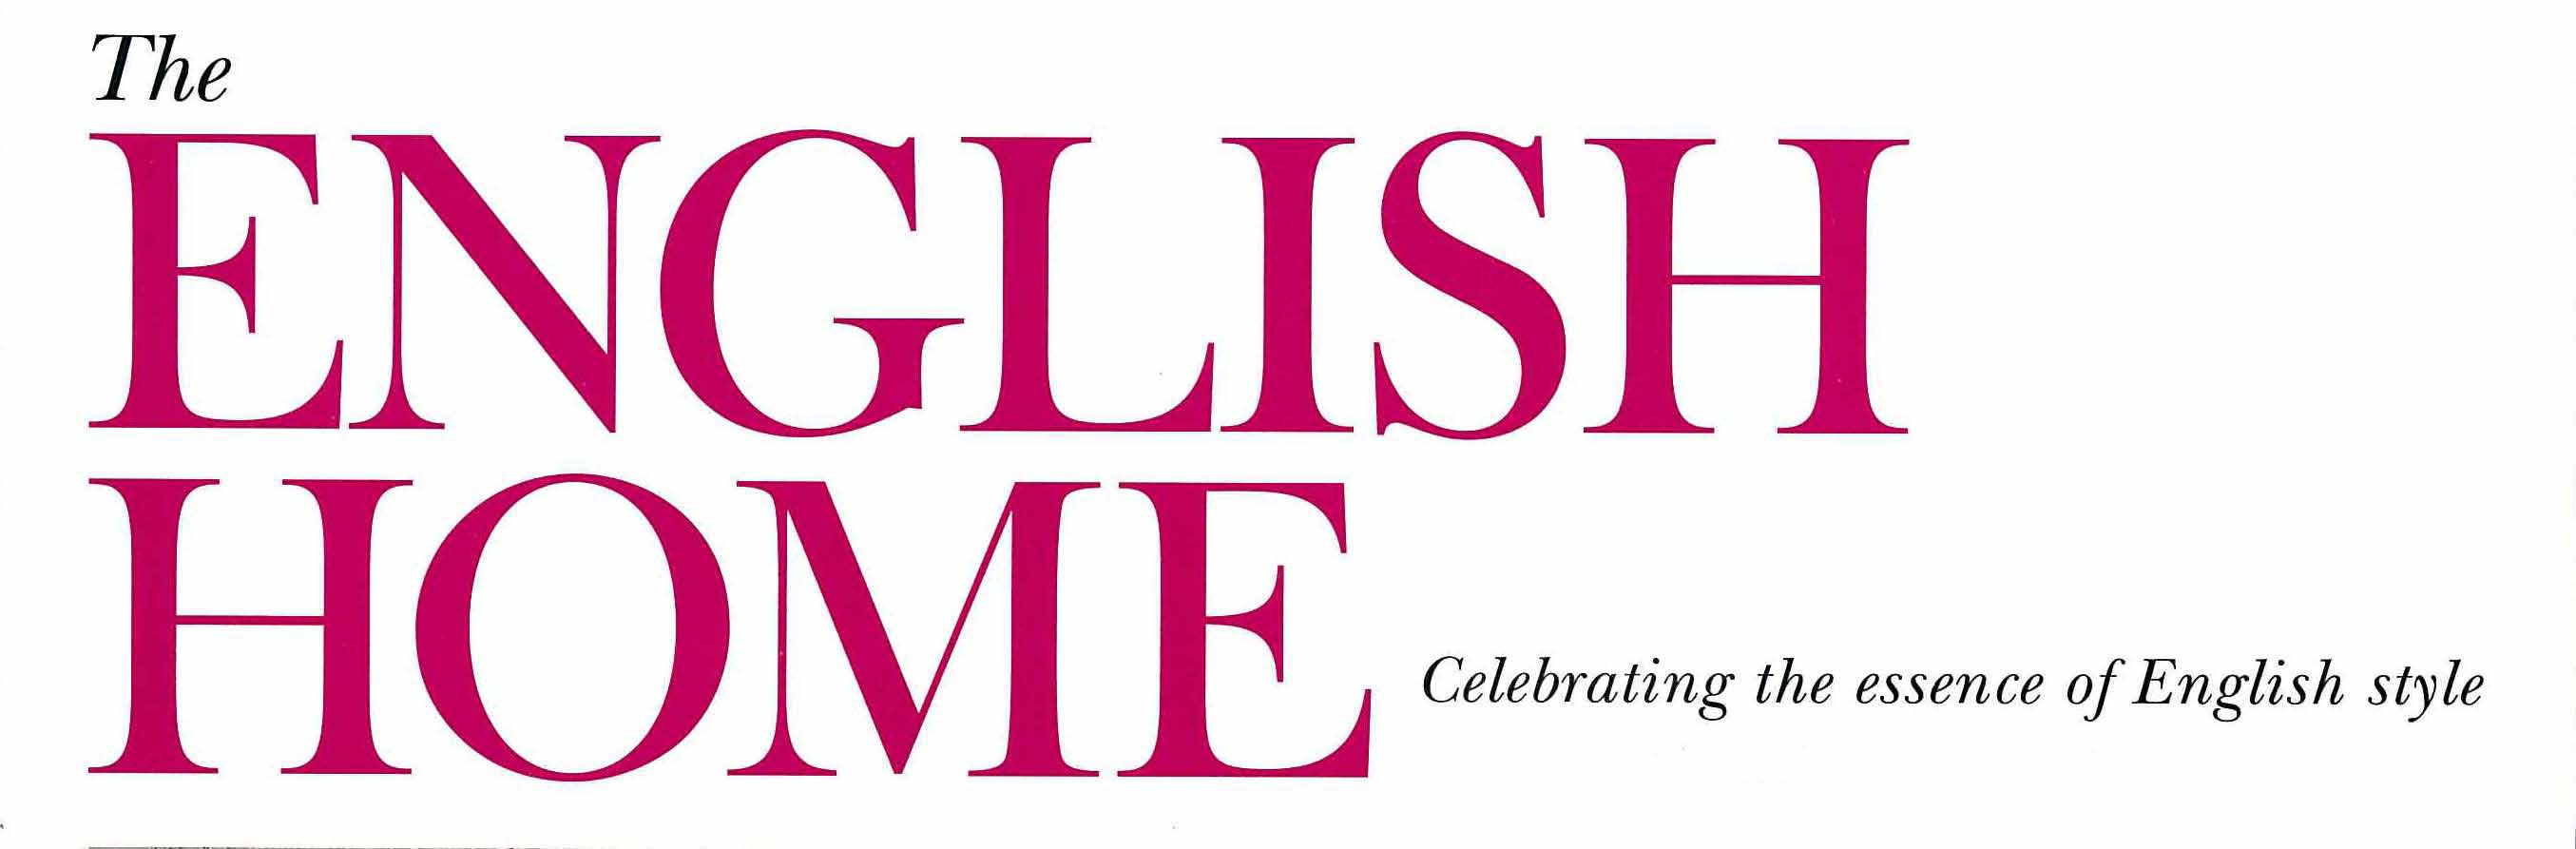 The_English_Home